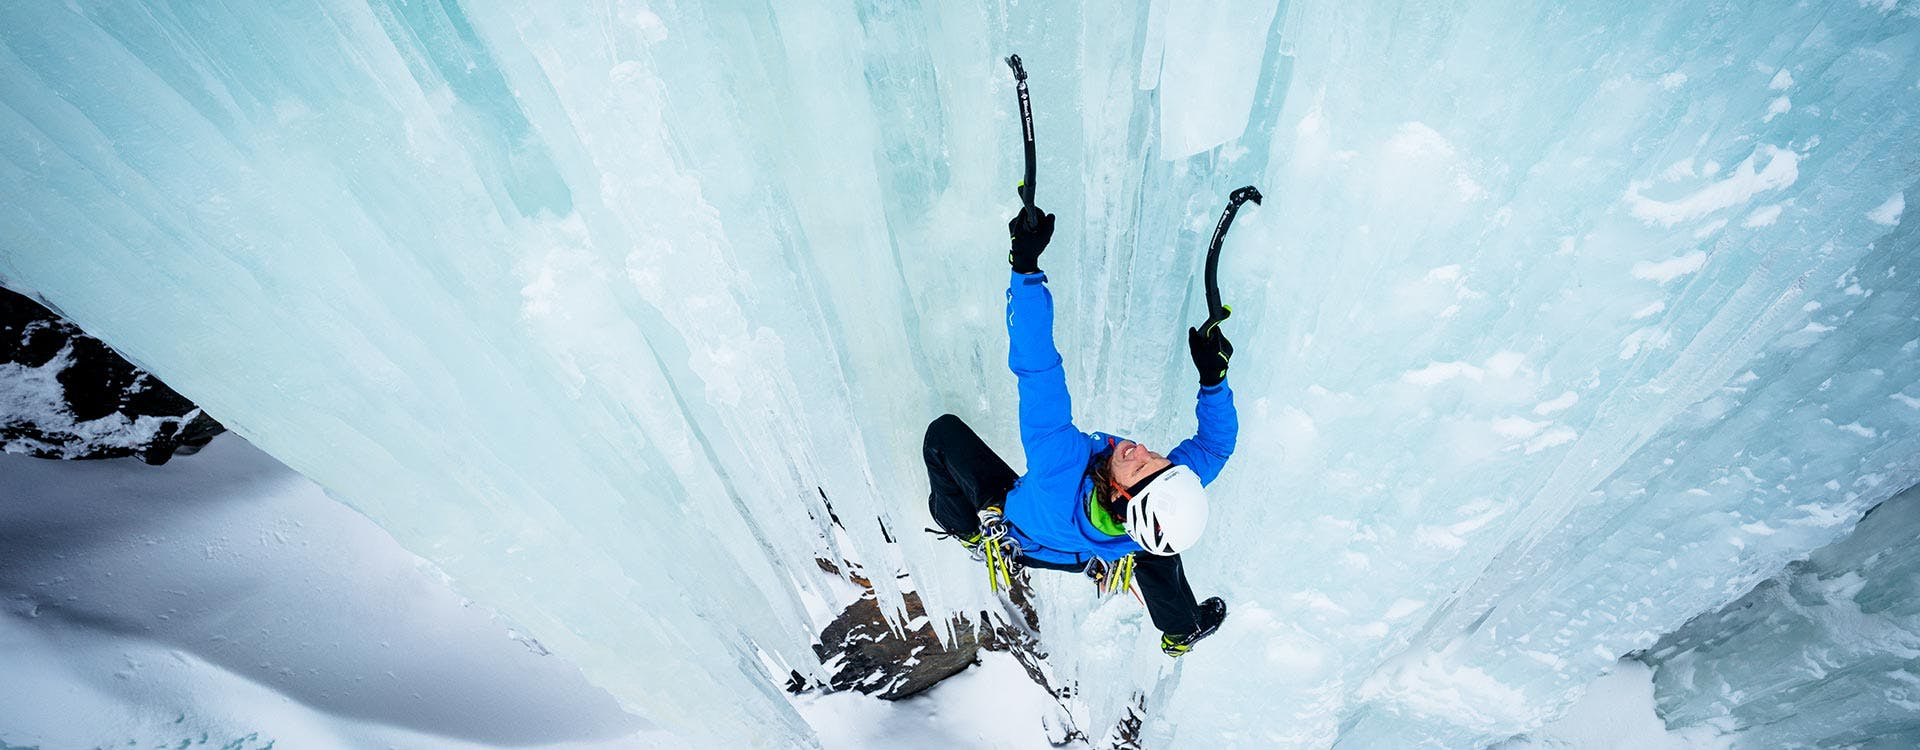 Man climbing an ice route